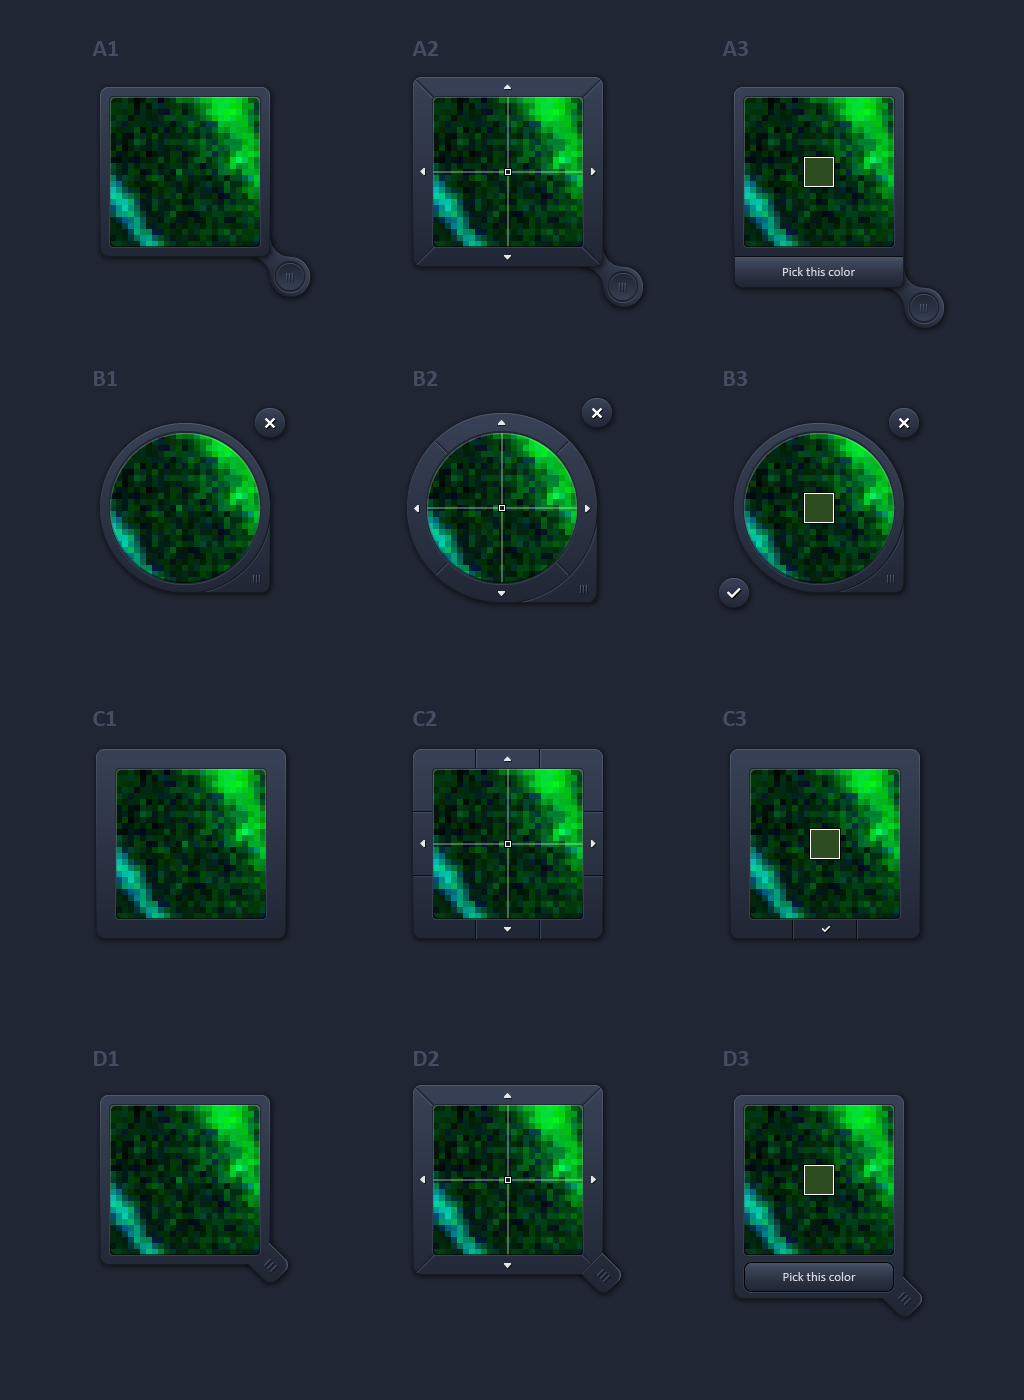 Zeiss_Magnifier-Versions.png